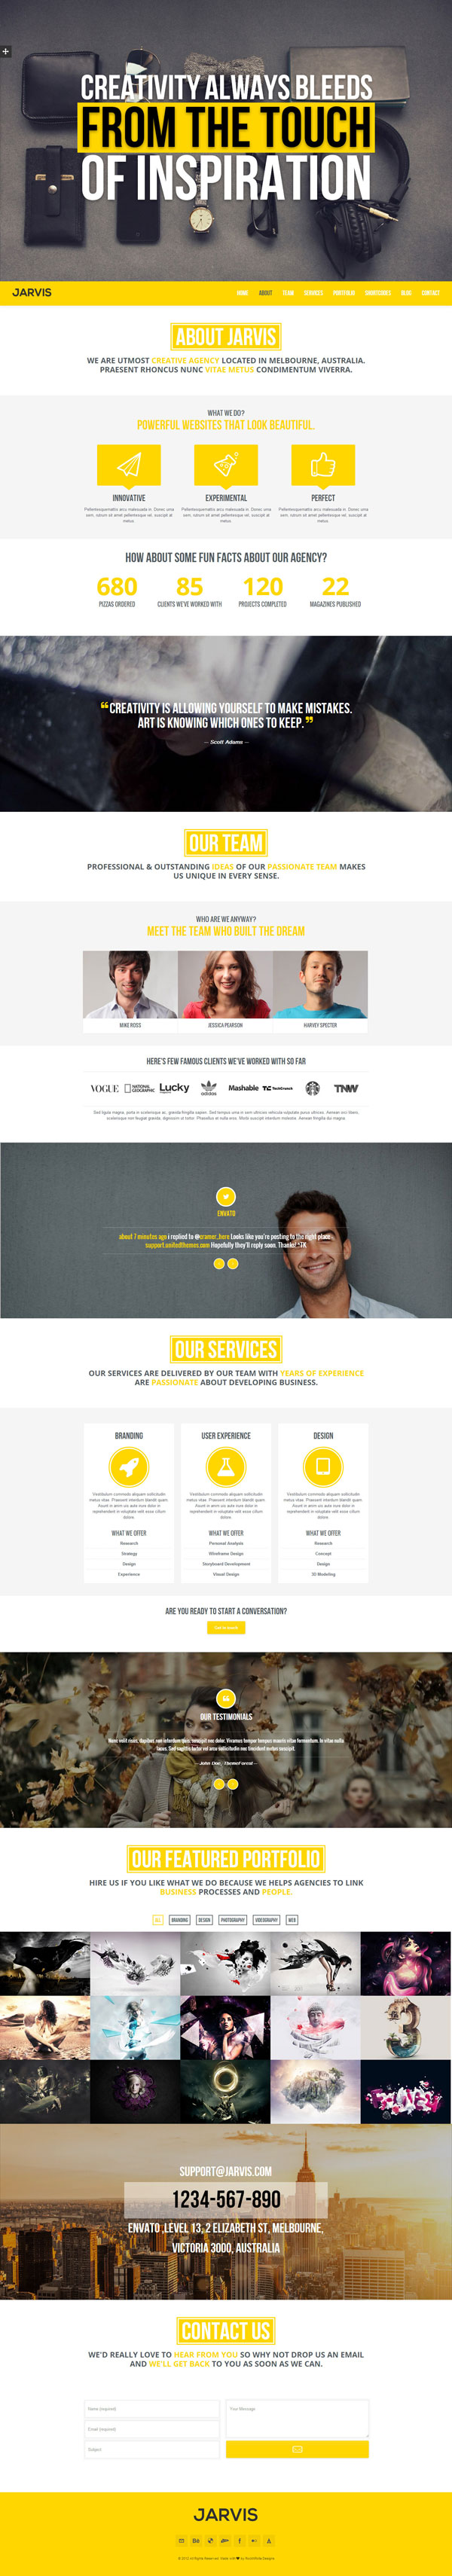 Jarvis – One Page Parallax WordPress Theme by RockNRollaDesigns